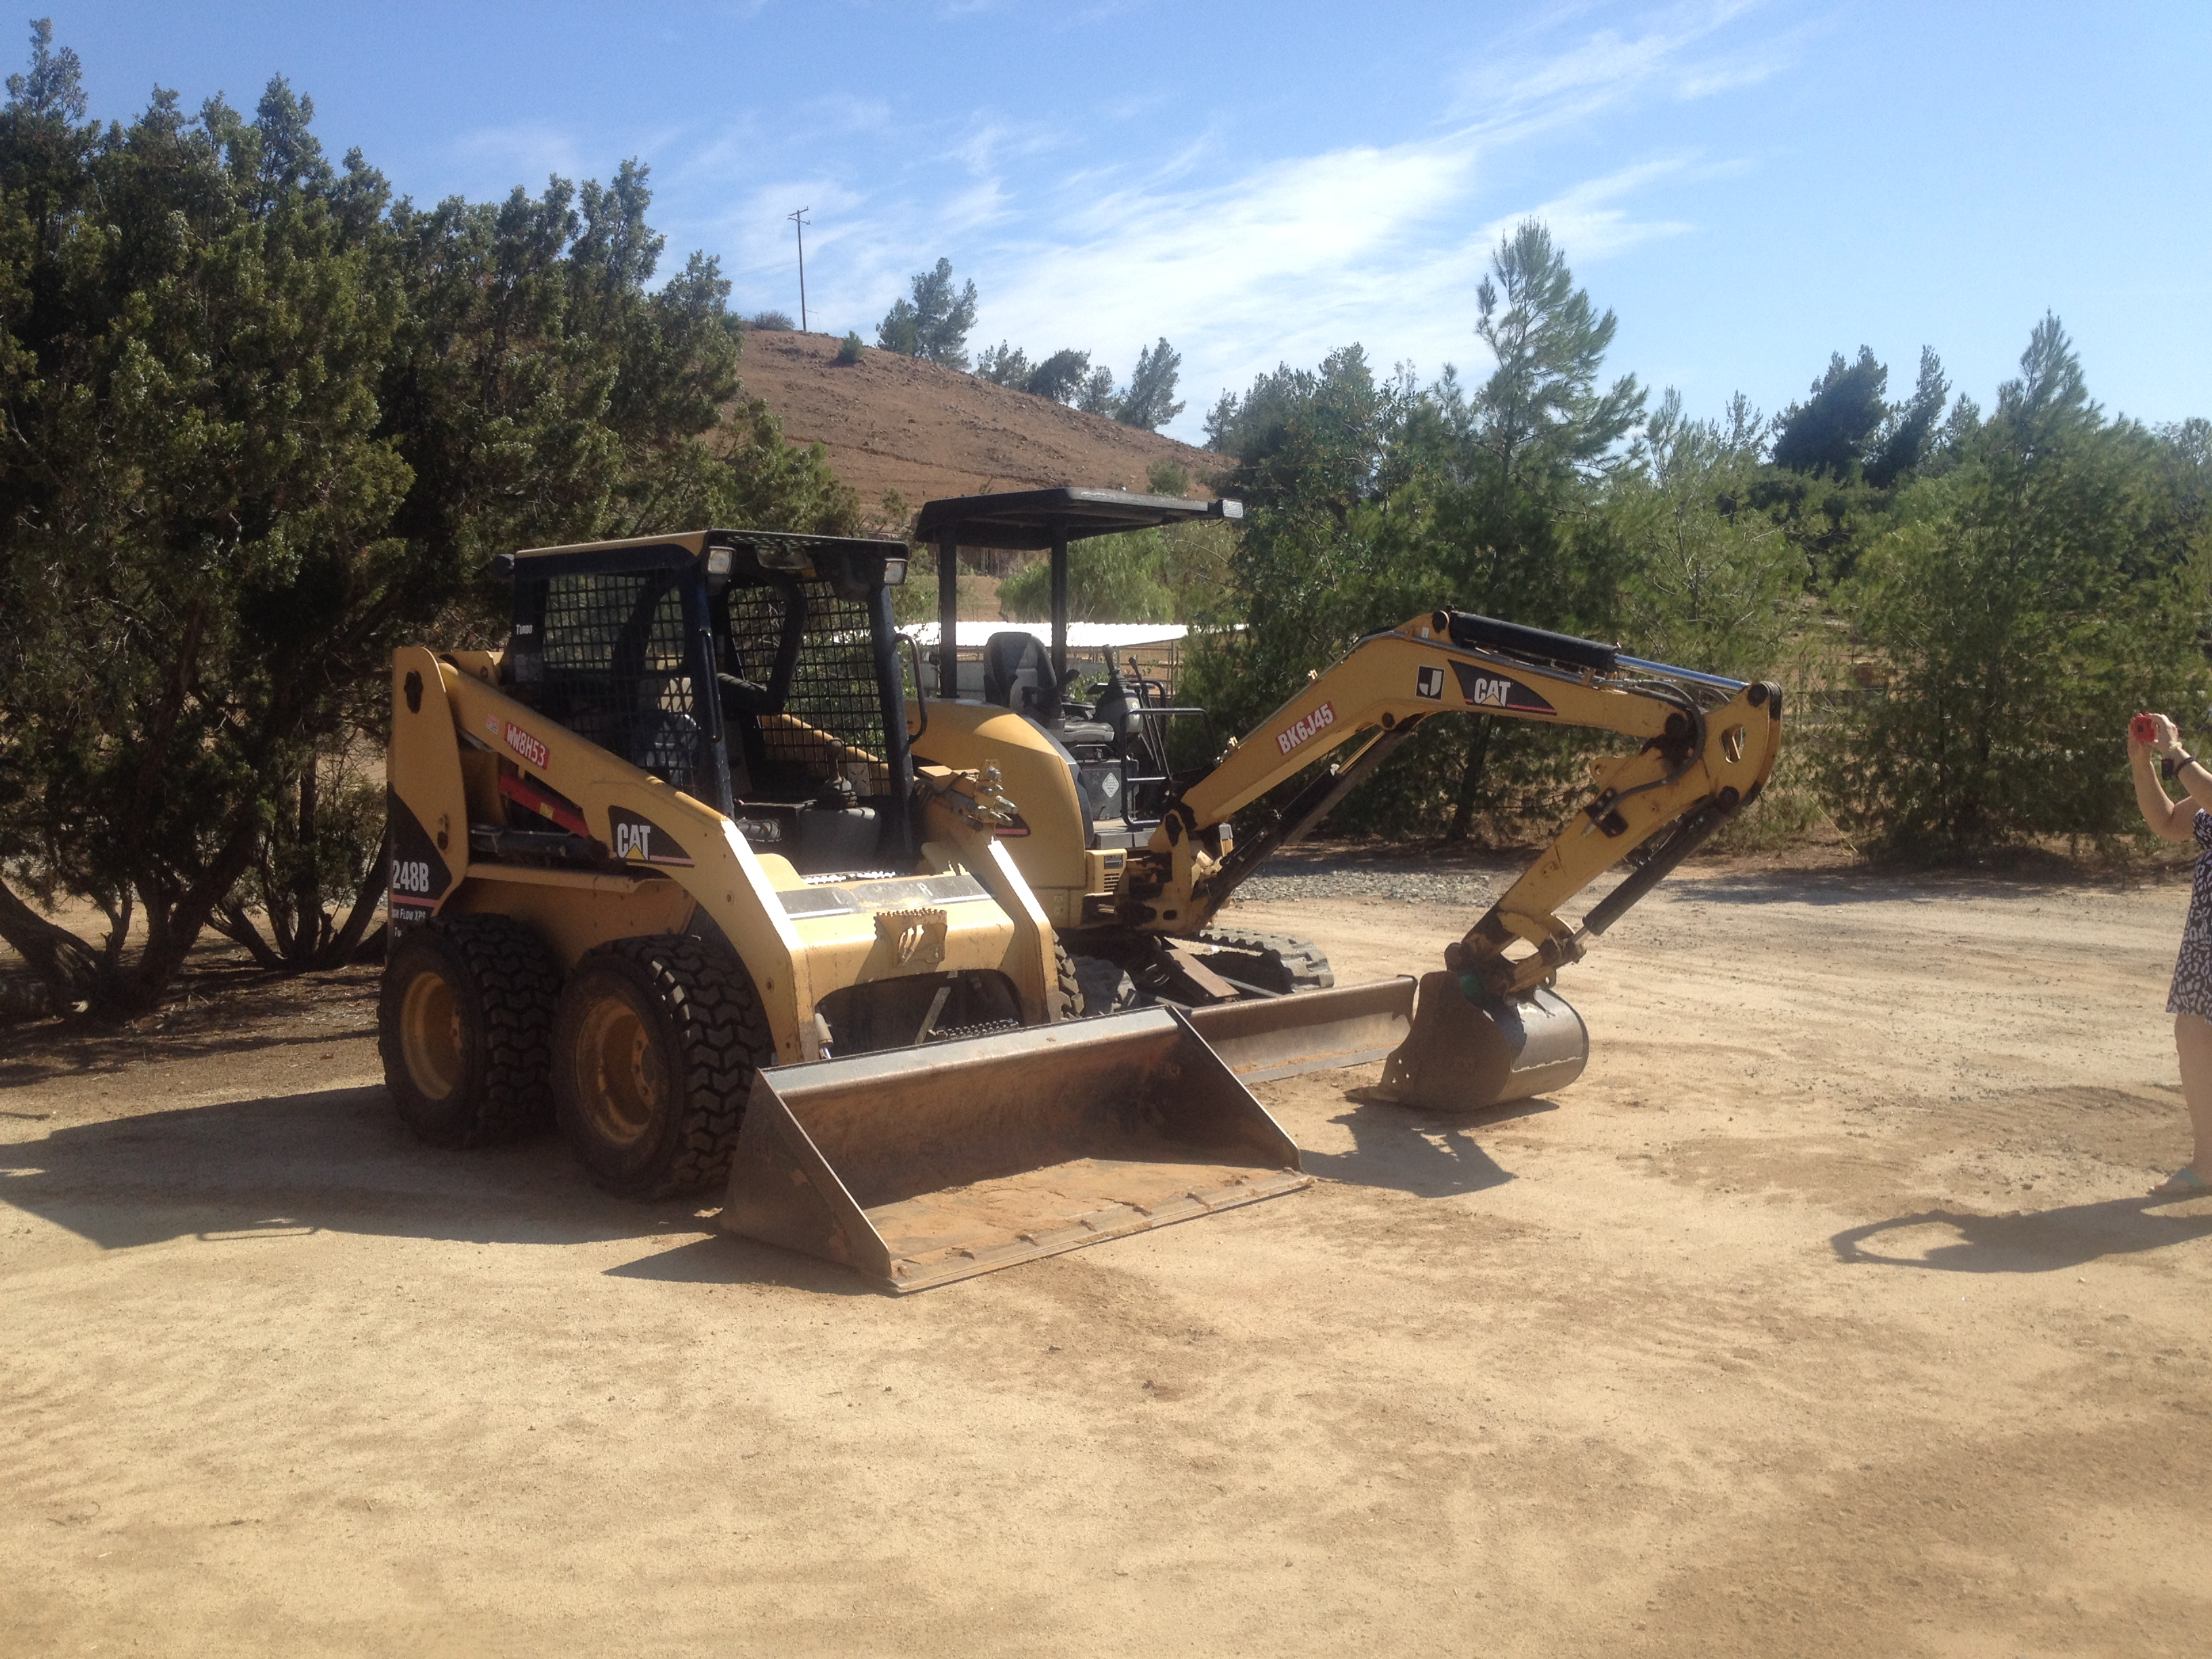 Bob Turner Backhoe Riverside California Proview